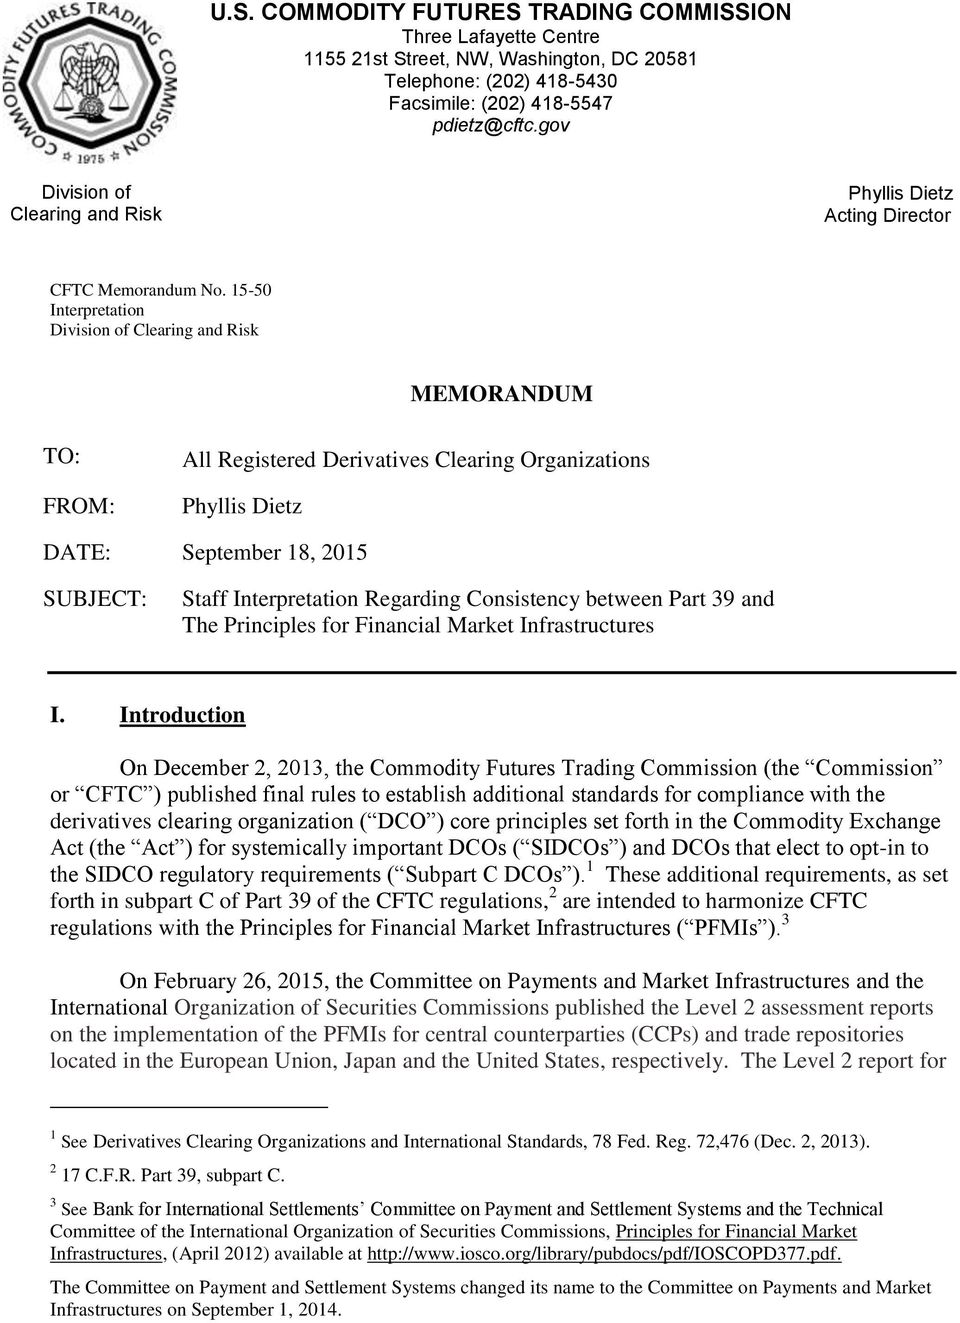 15-50 Interpretation Division of Clearing and Risk MEMORANDUM TO: FROM: All Registered Derivatives Clearing Organizations Phyllis Dietz DATE: September 18, 2015 SUBJECT: Staff Interpretation